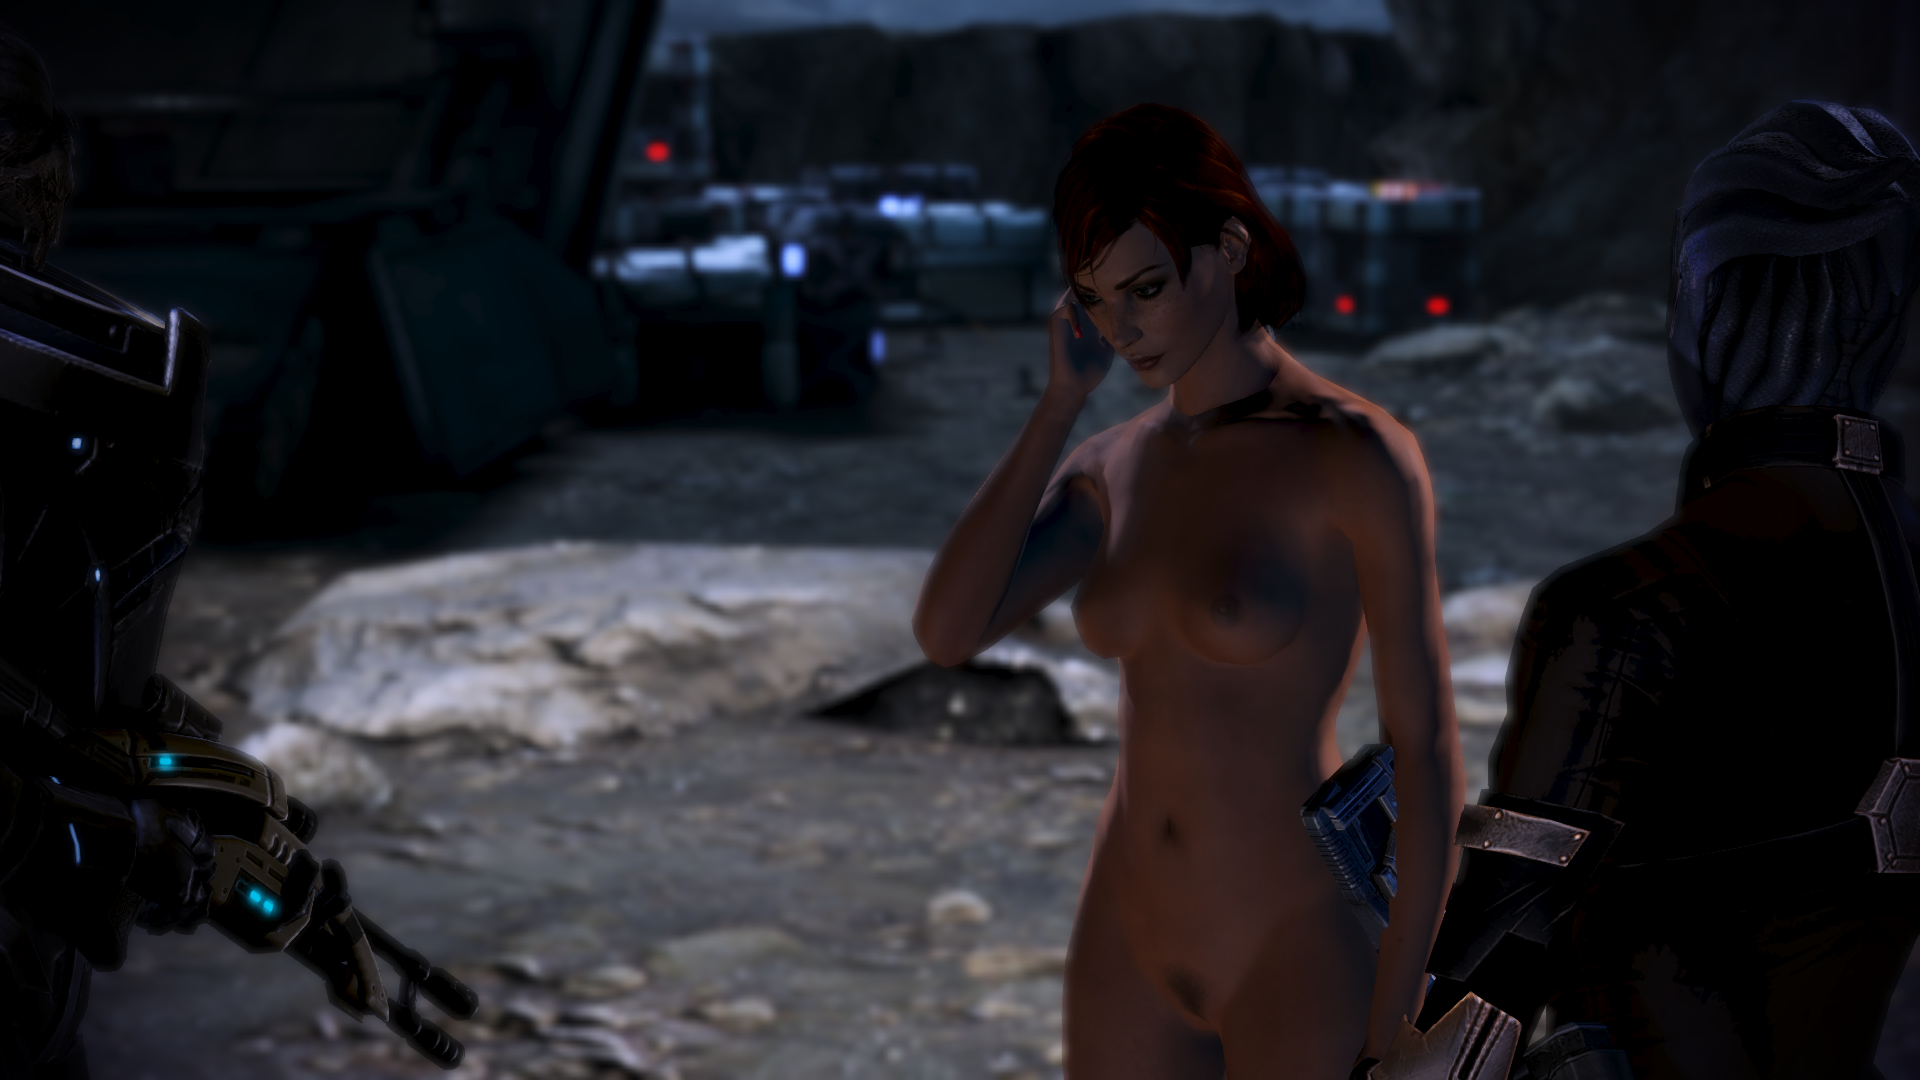 Nude patch mass effect 2 adult image